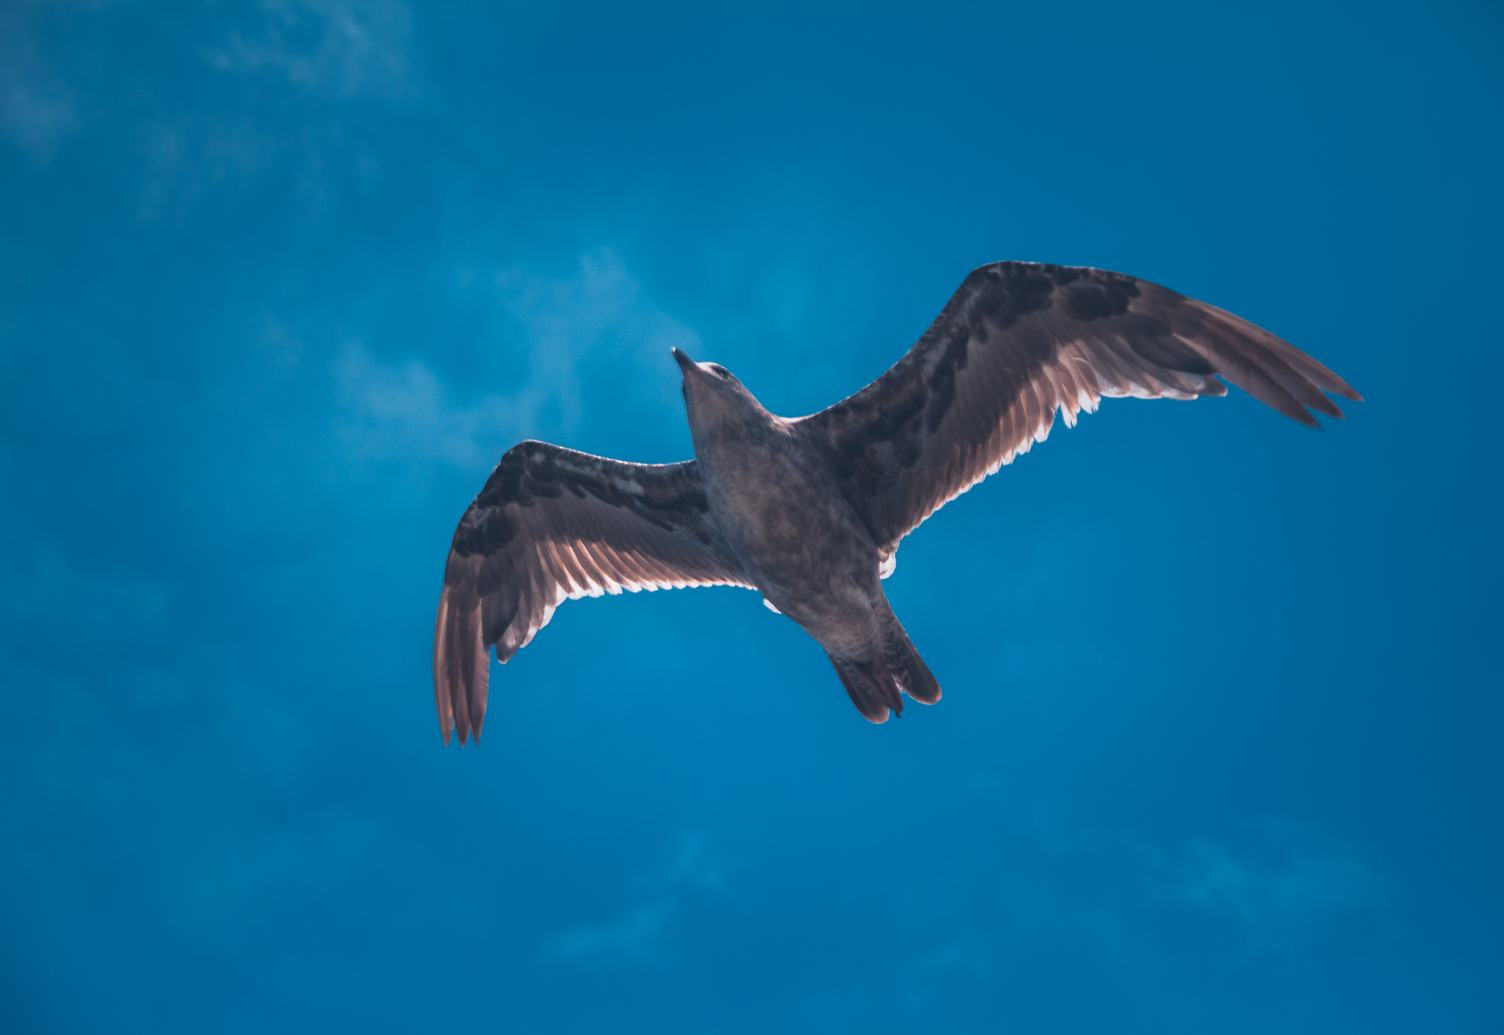 Large Bird Soaring on a Deep Blue Sky